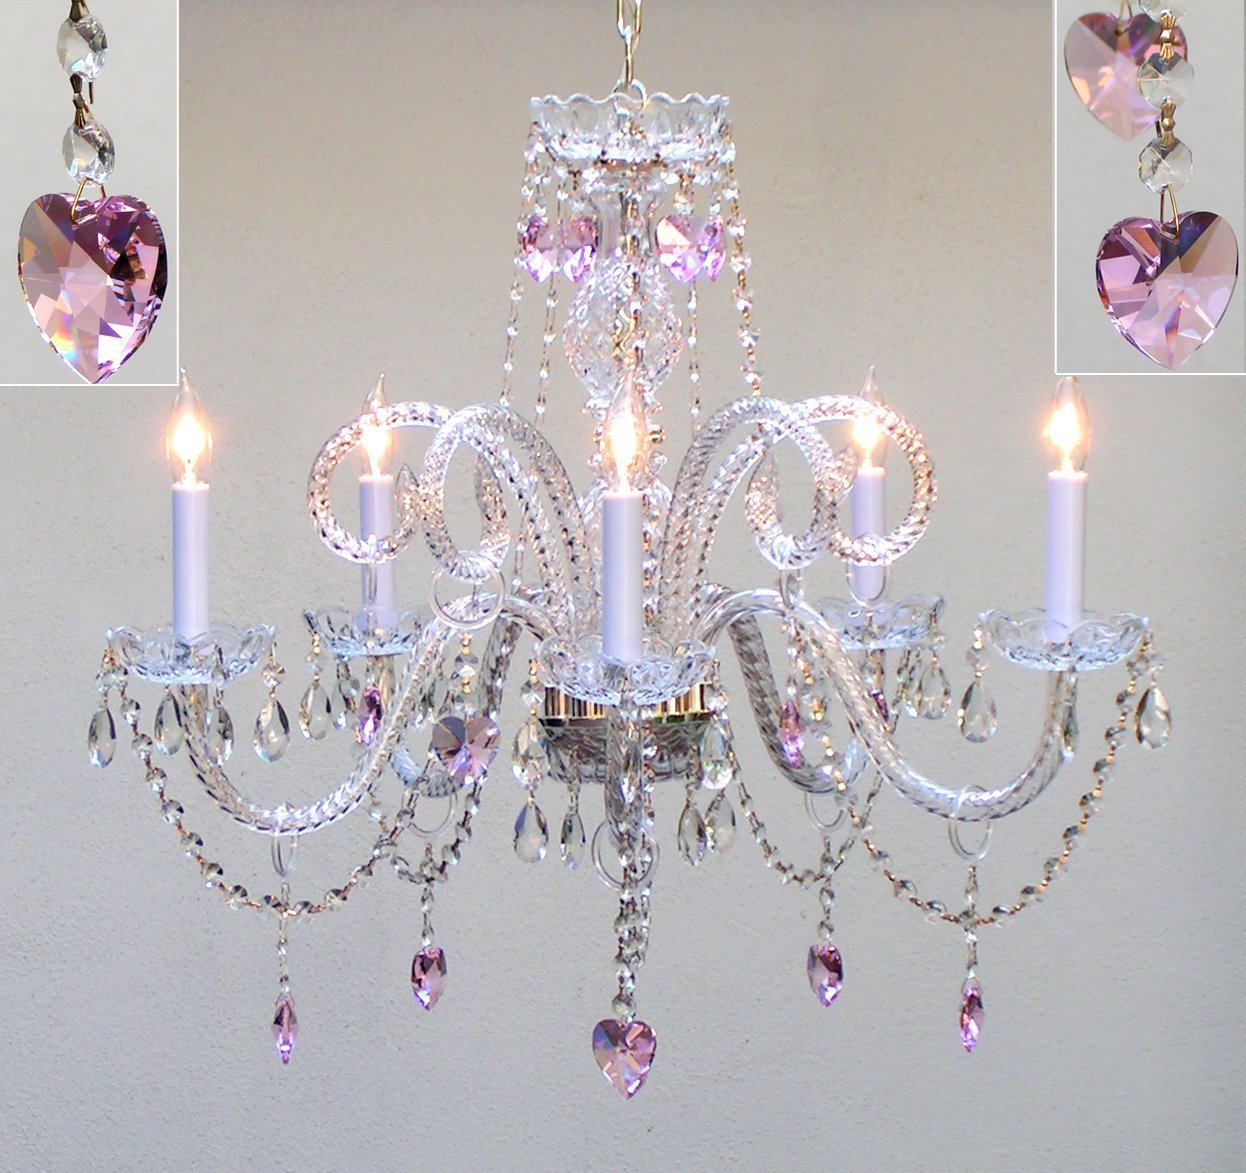 Total fab affordable chandeliers for girls to teens rooms real crystals pink hearts for baby girl to teen chandelier arubaitofo Image collections